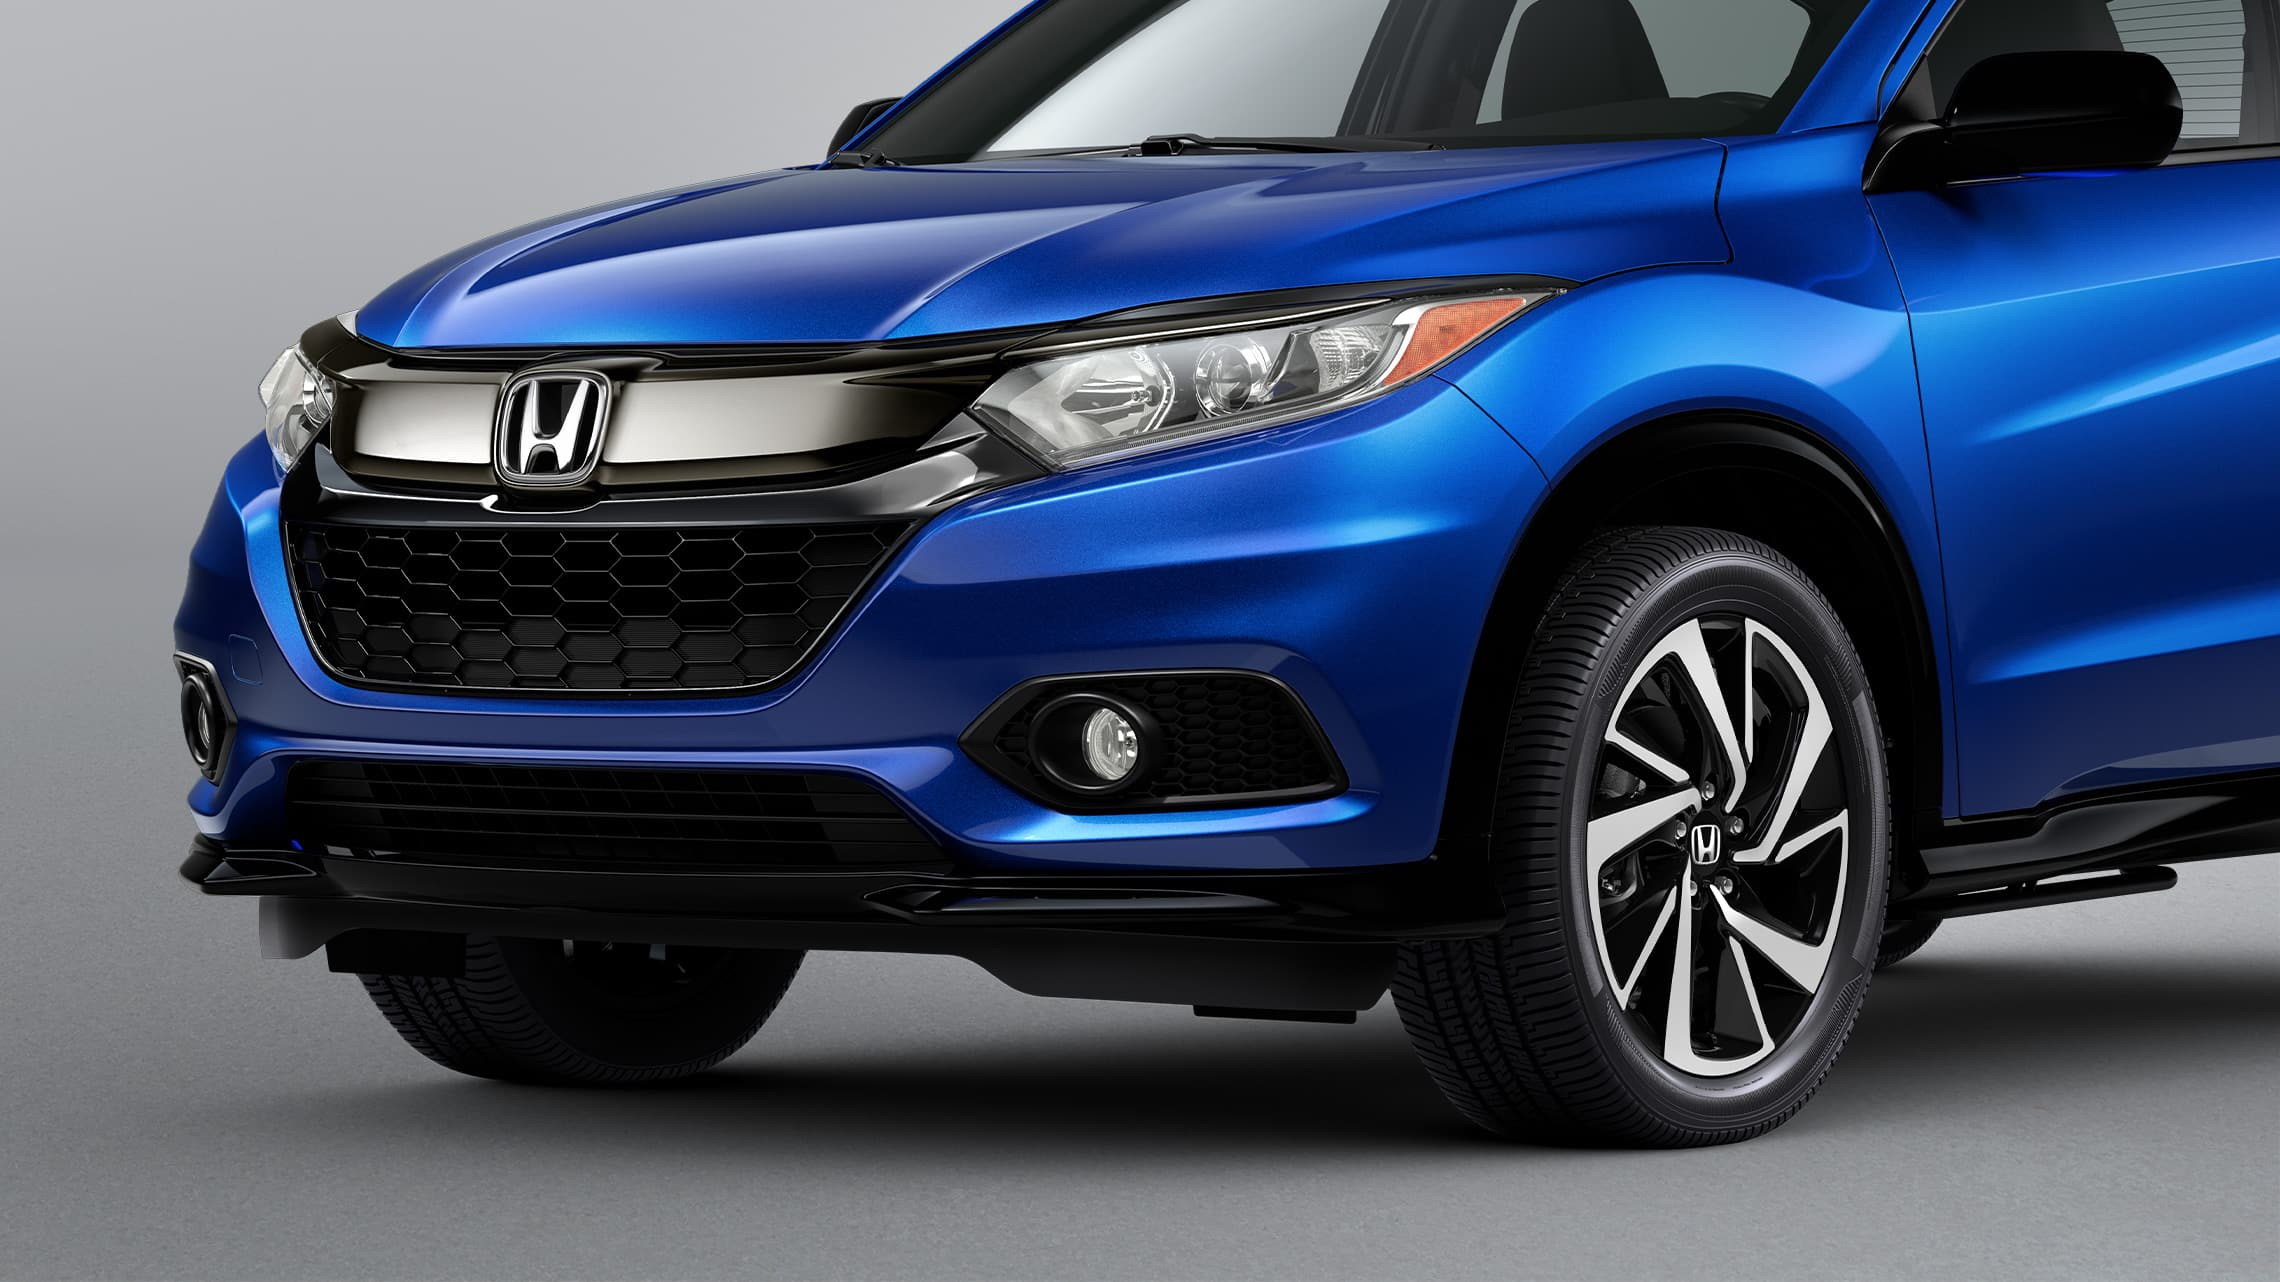 Front bumper garnish detail on the 2020 Honda HR-V Sport in Aegean Blue Metallic.